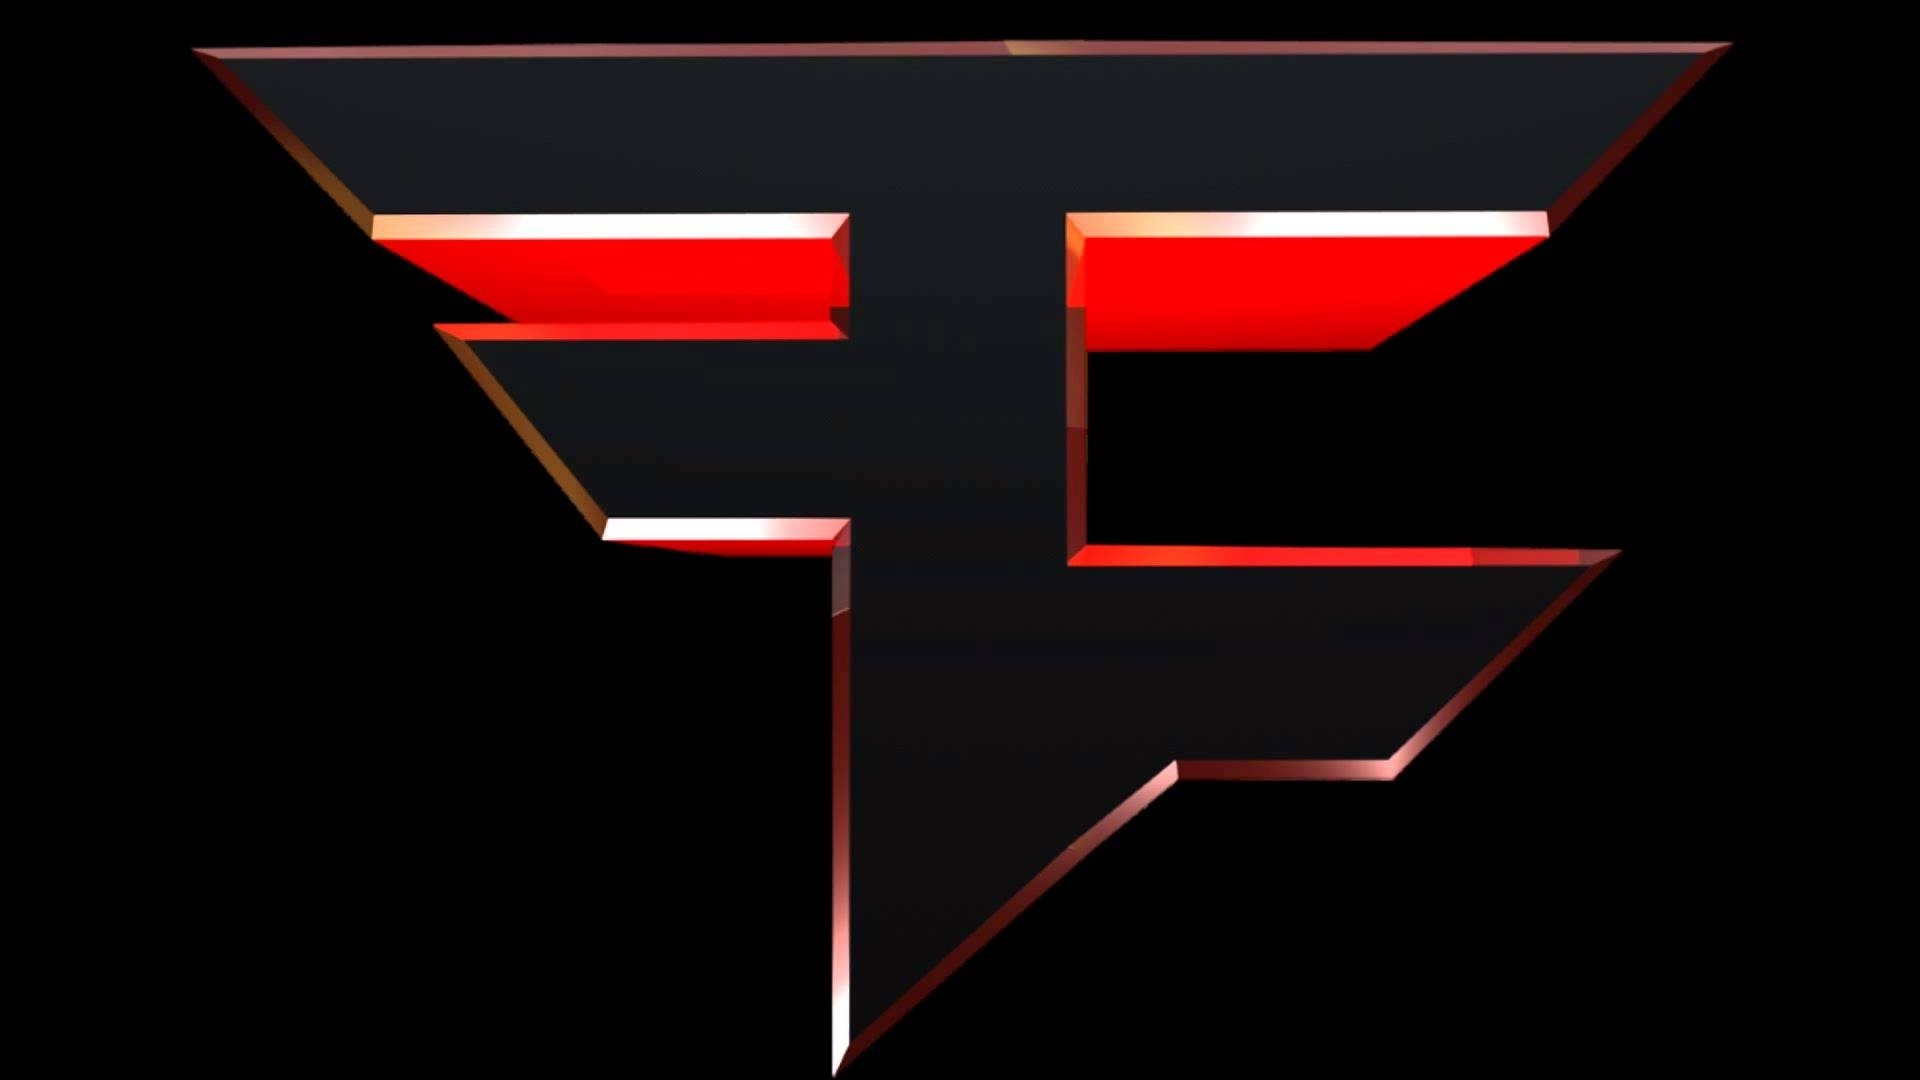 Res: 1920x1080, Title : faze clan wallpapers – wallpaper cave. Dimension : 1920 x 1080.  File Type : JPG/JPEG